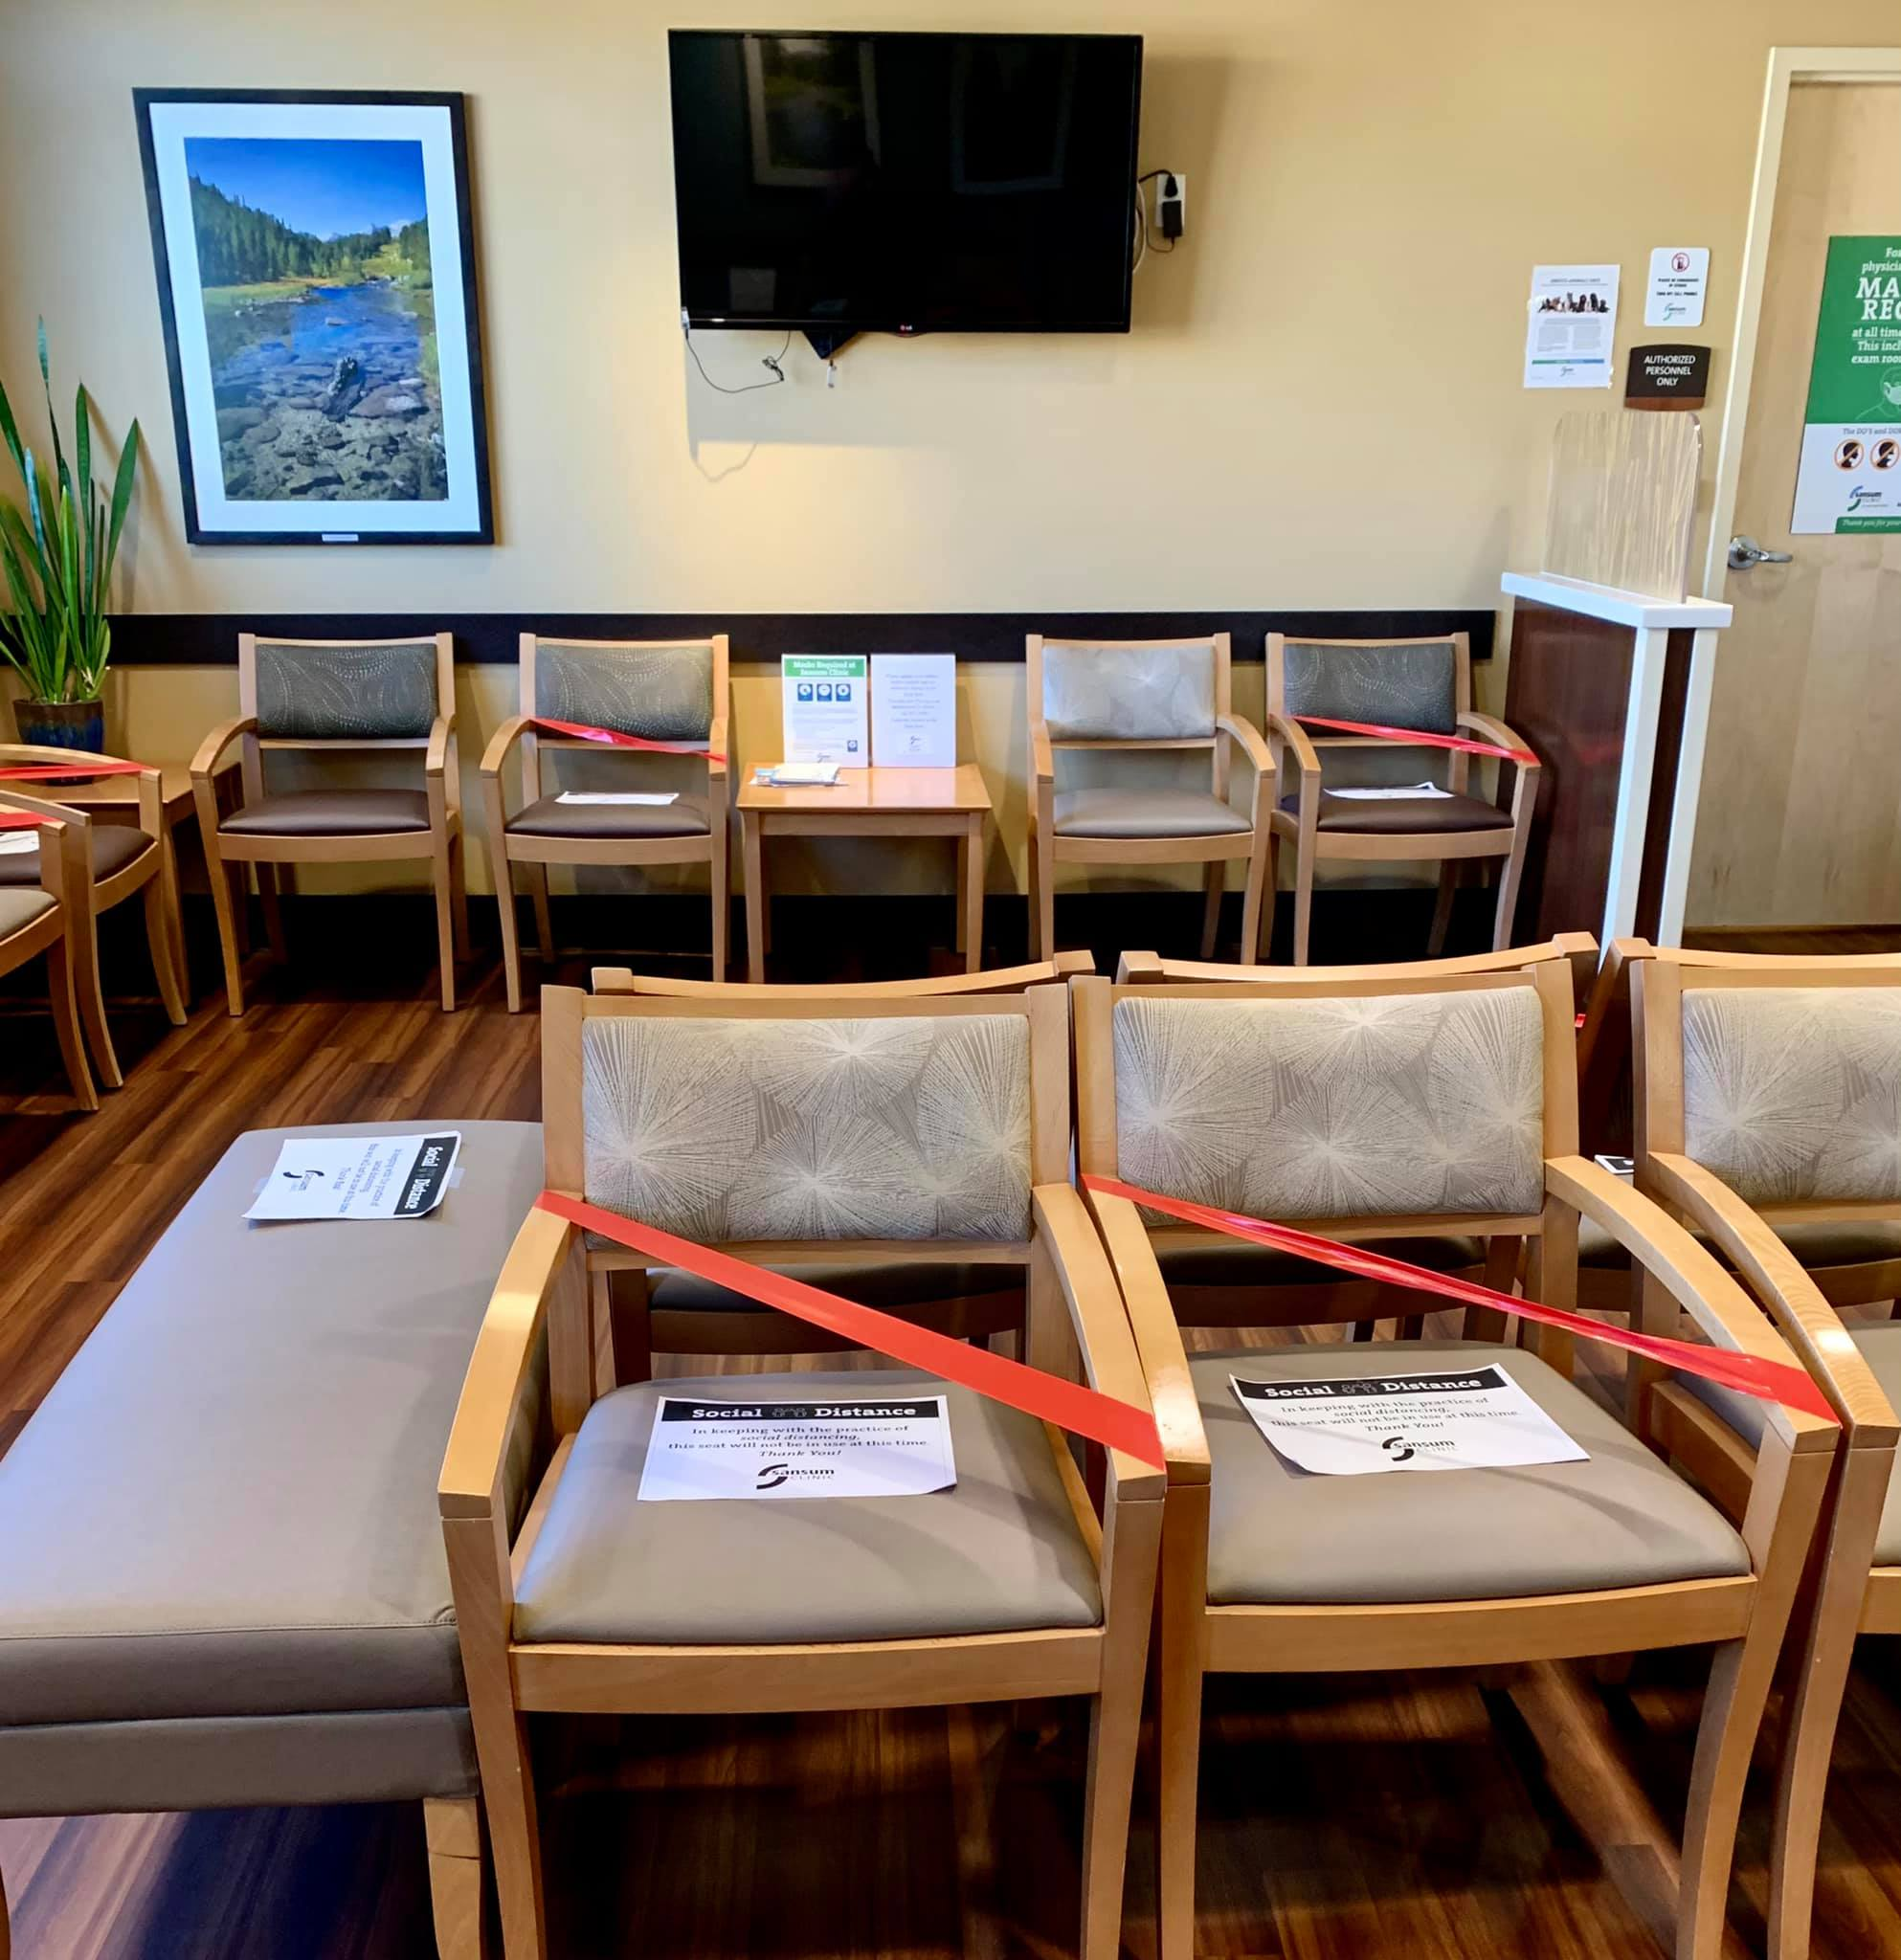 Typical medical-clinic waiting room these days!